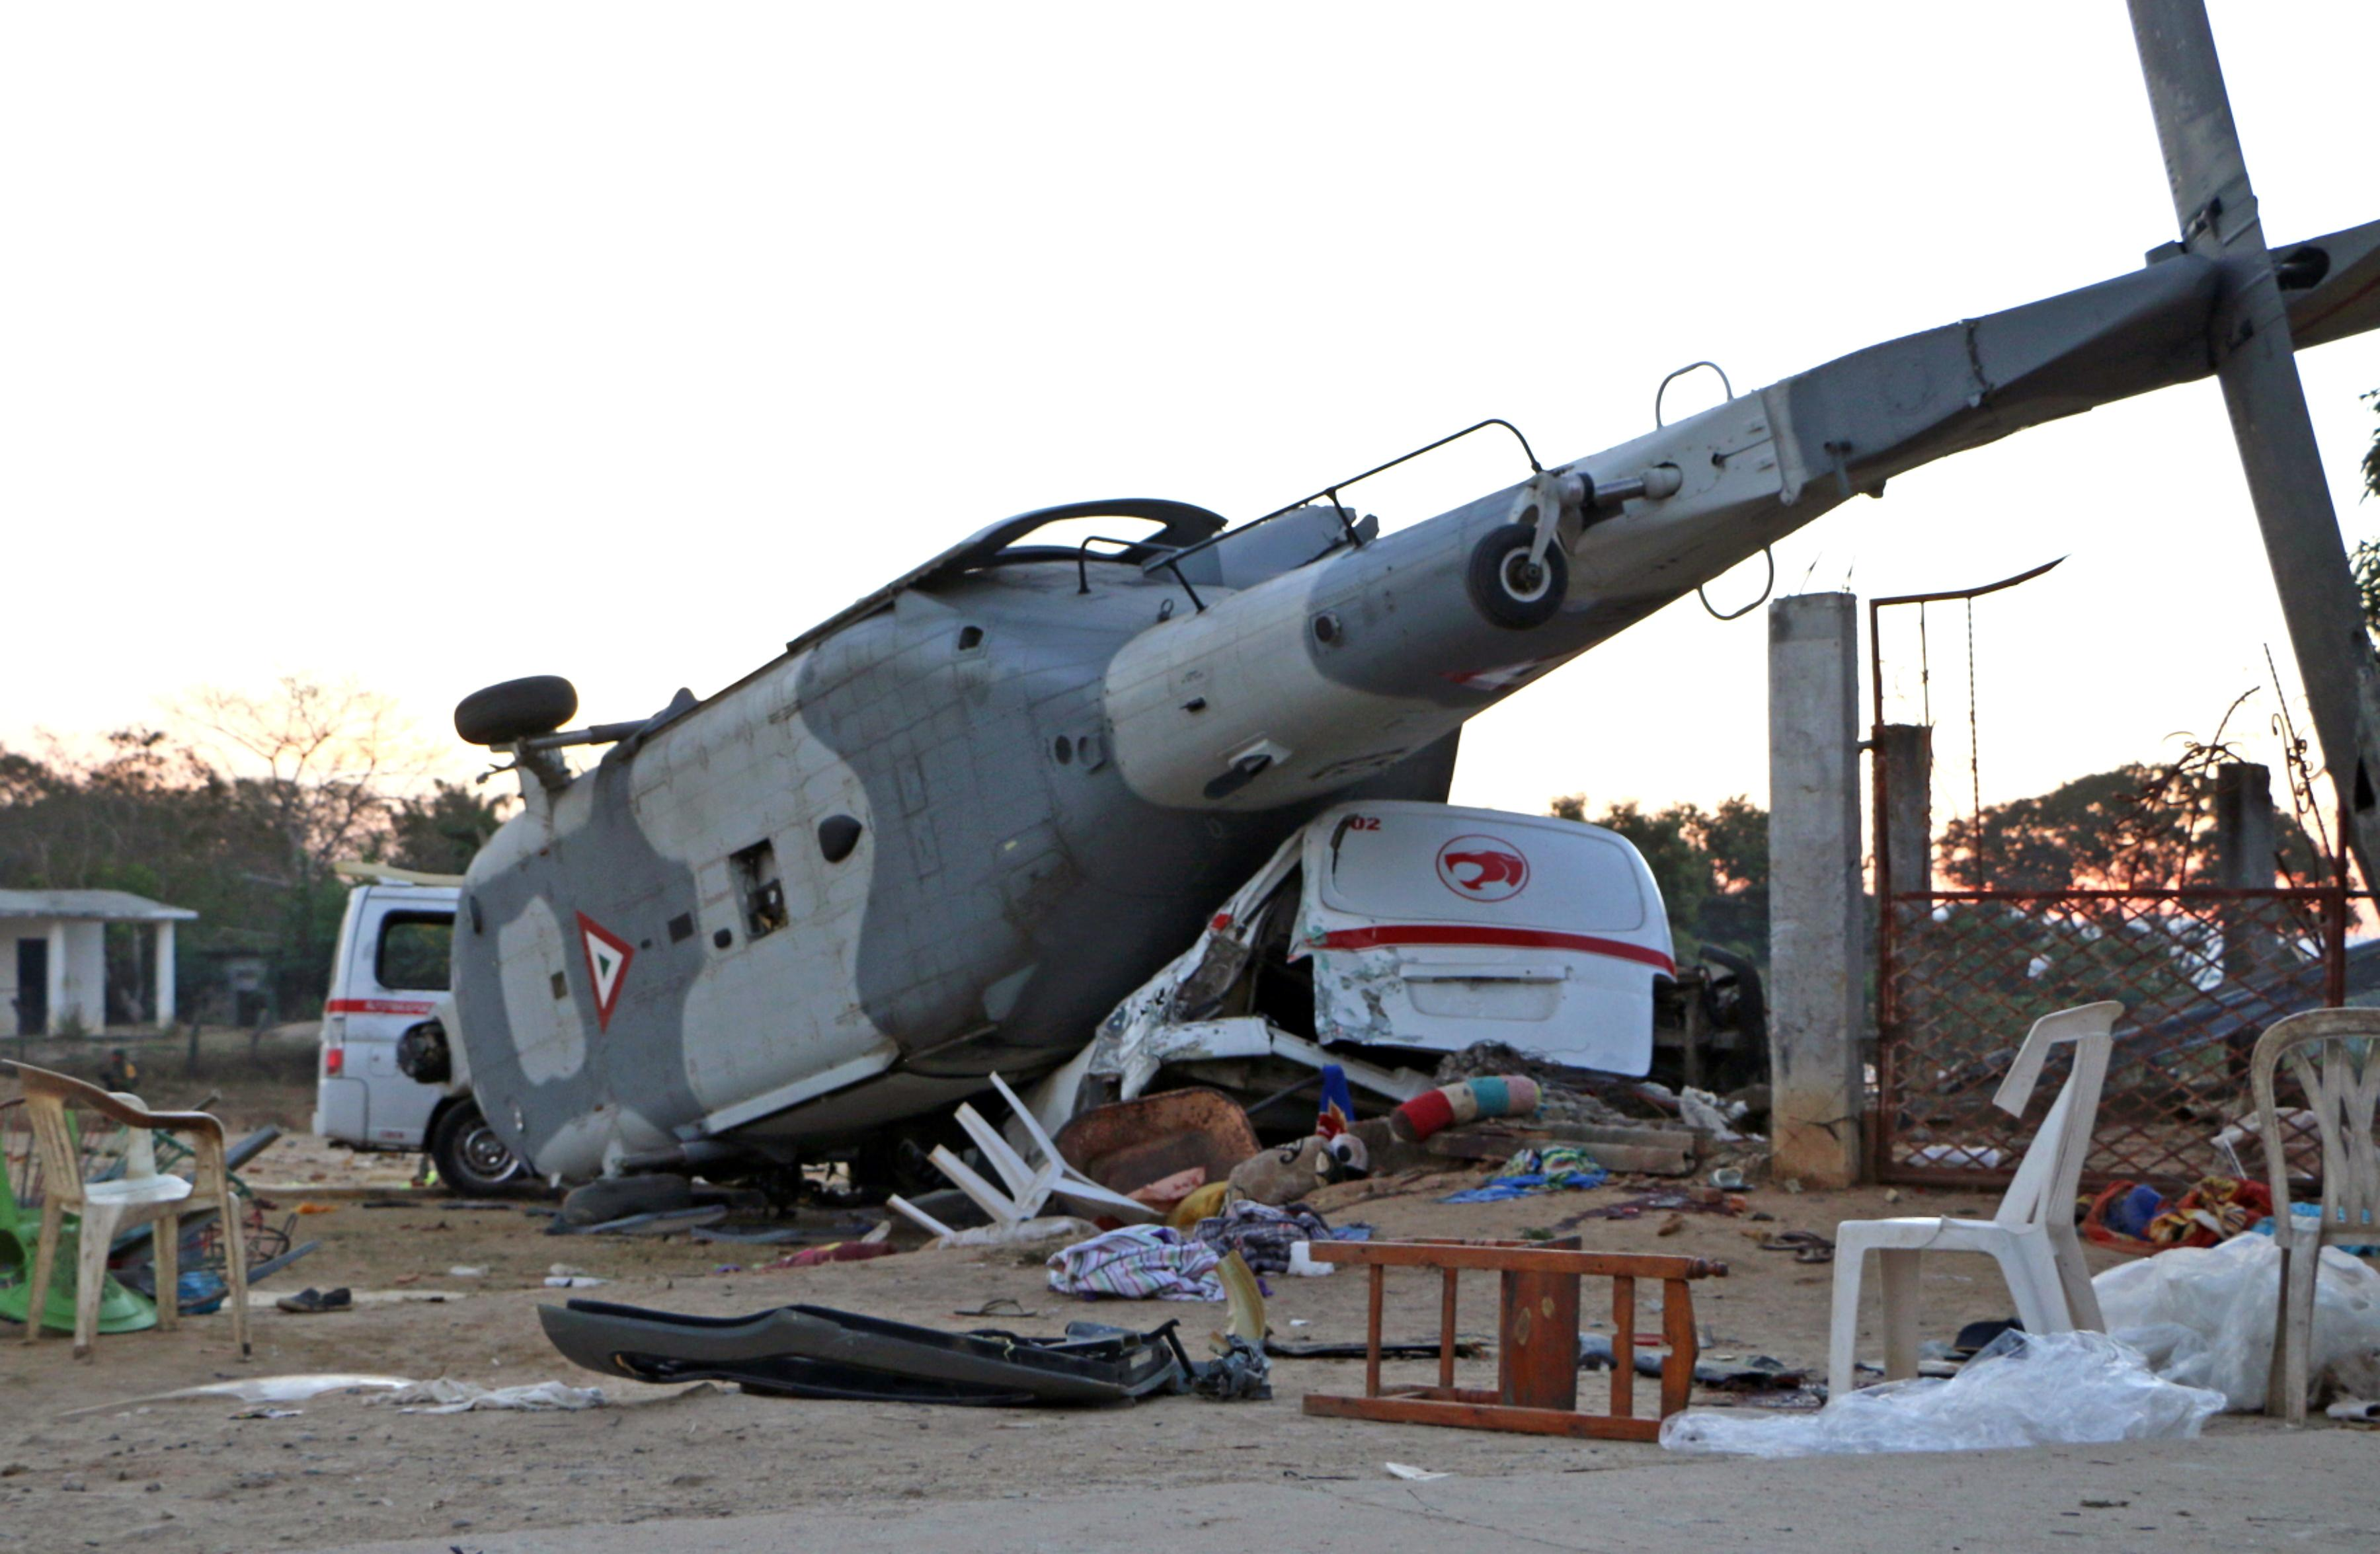 Marine Helicopter Crash: 4 Feared Dead After Chopper Went ...